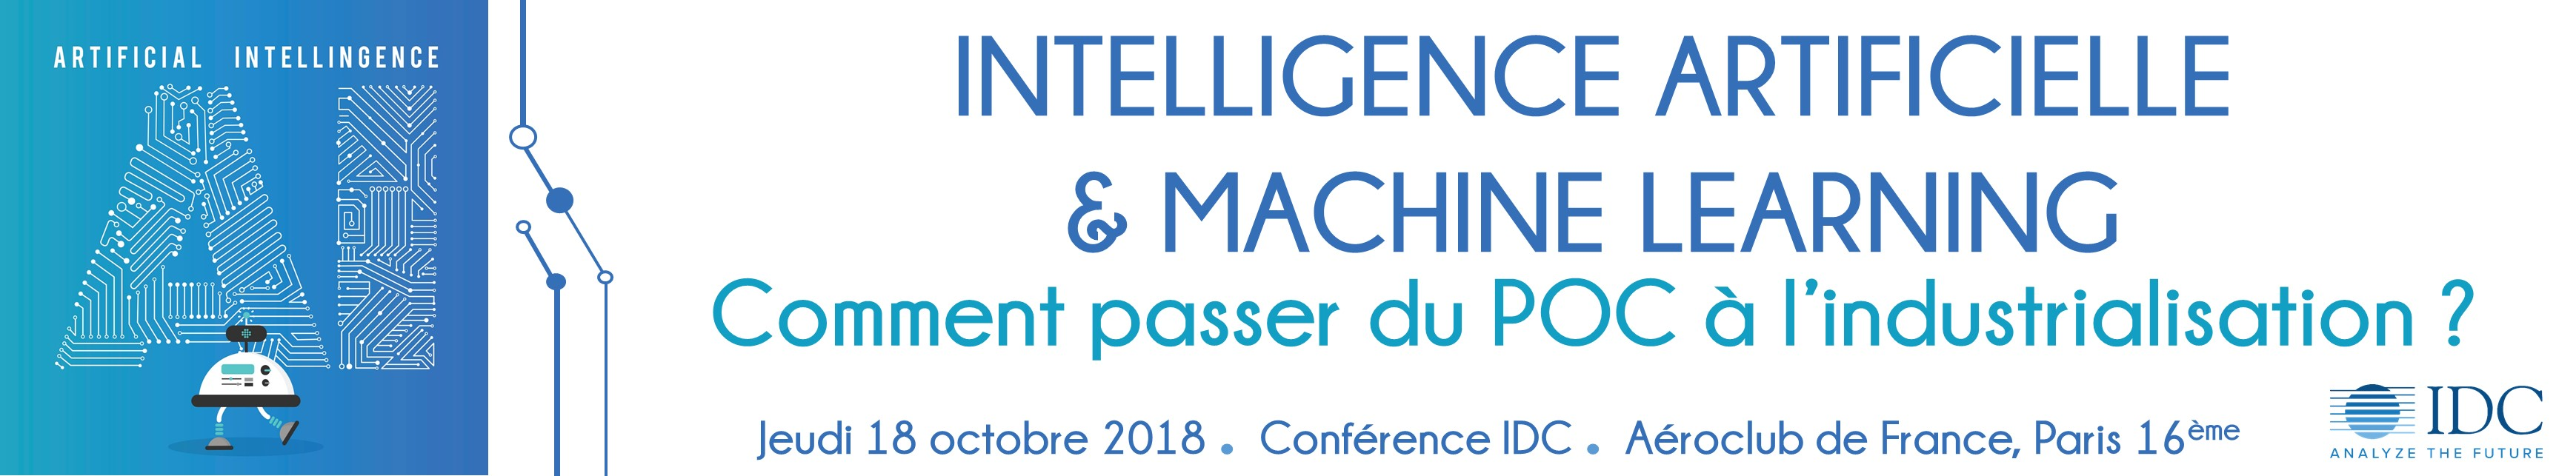 Conférence IDC - Intelligence Artificielle & Machine Learning  : comment passer du POC à l'industrialisation ? - 18 octobre 2018